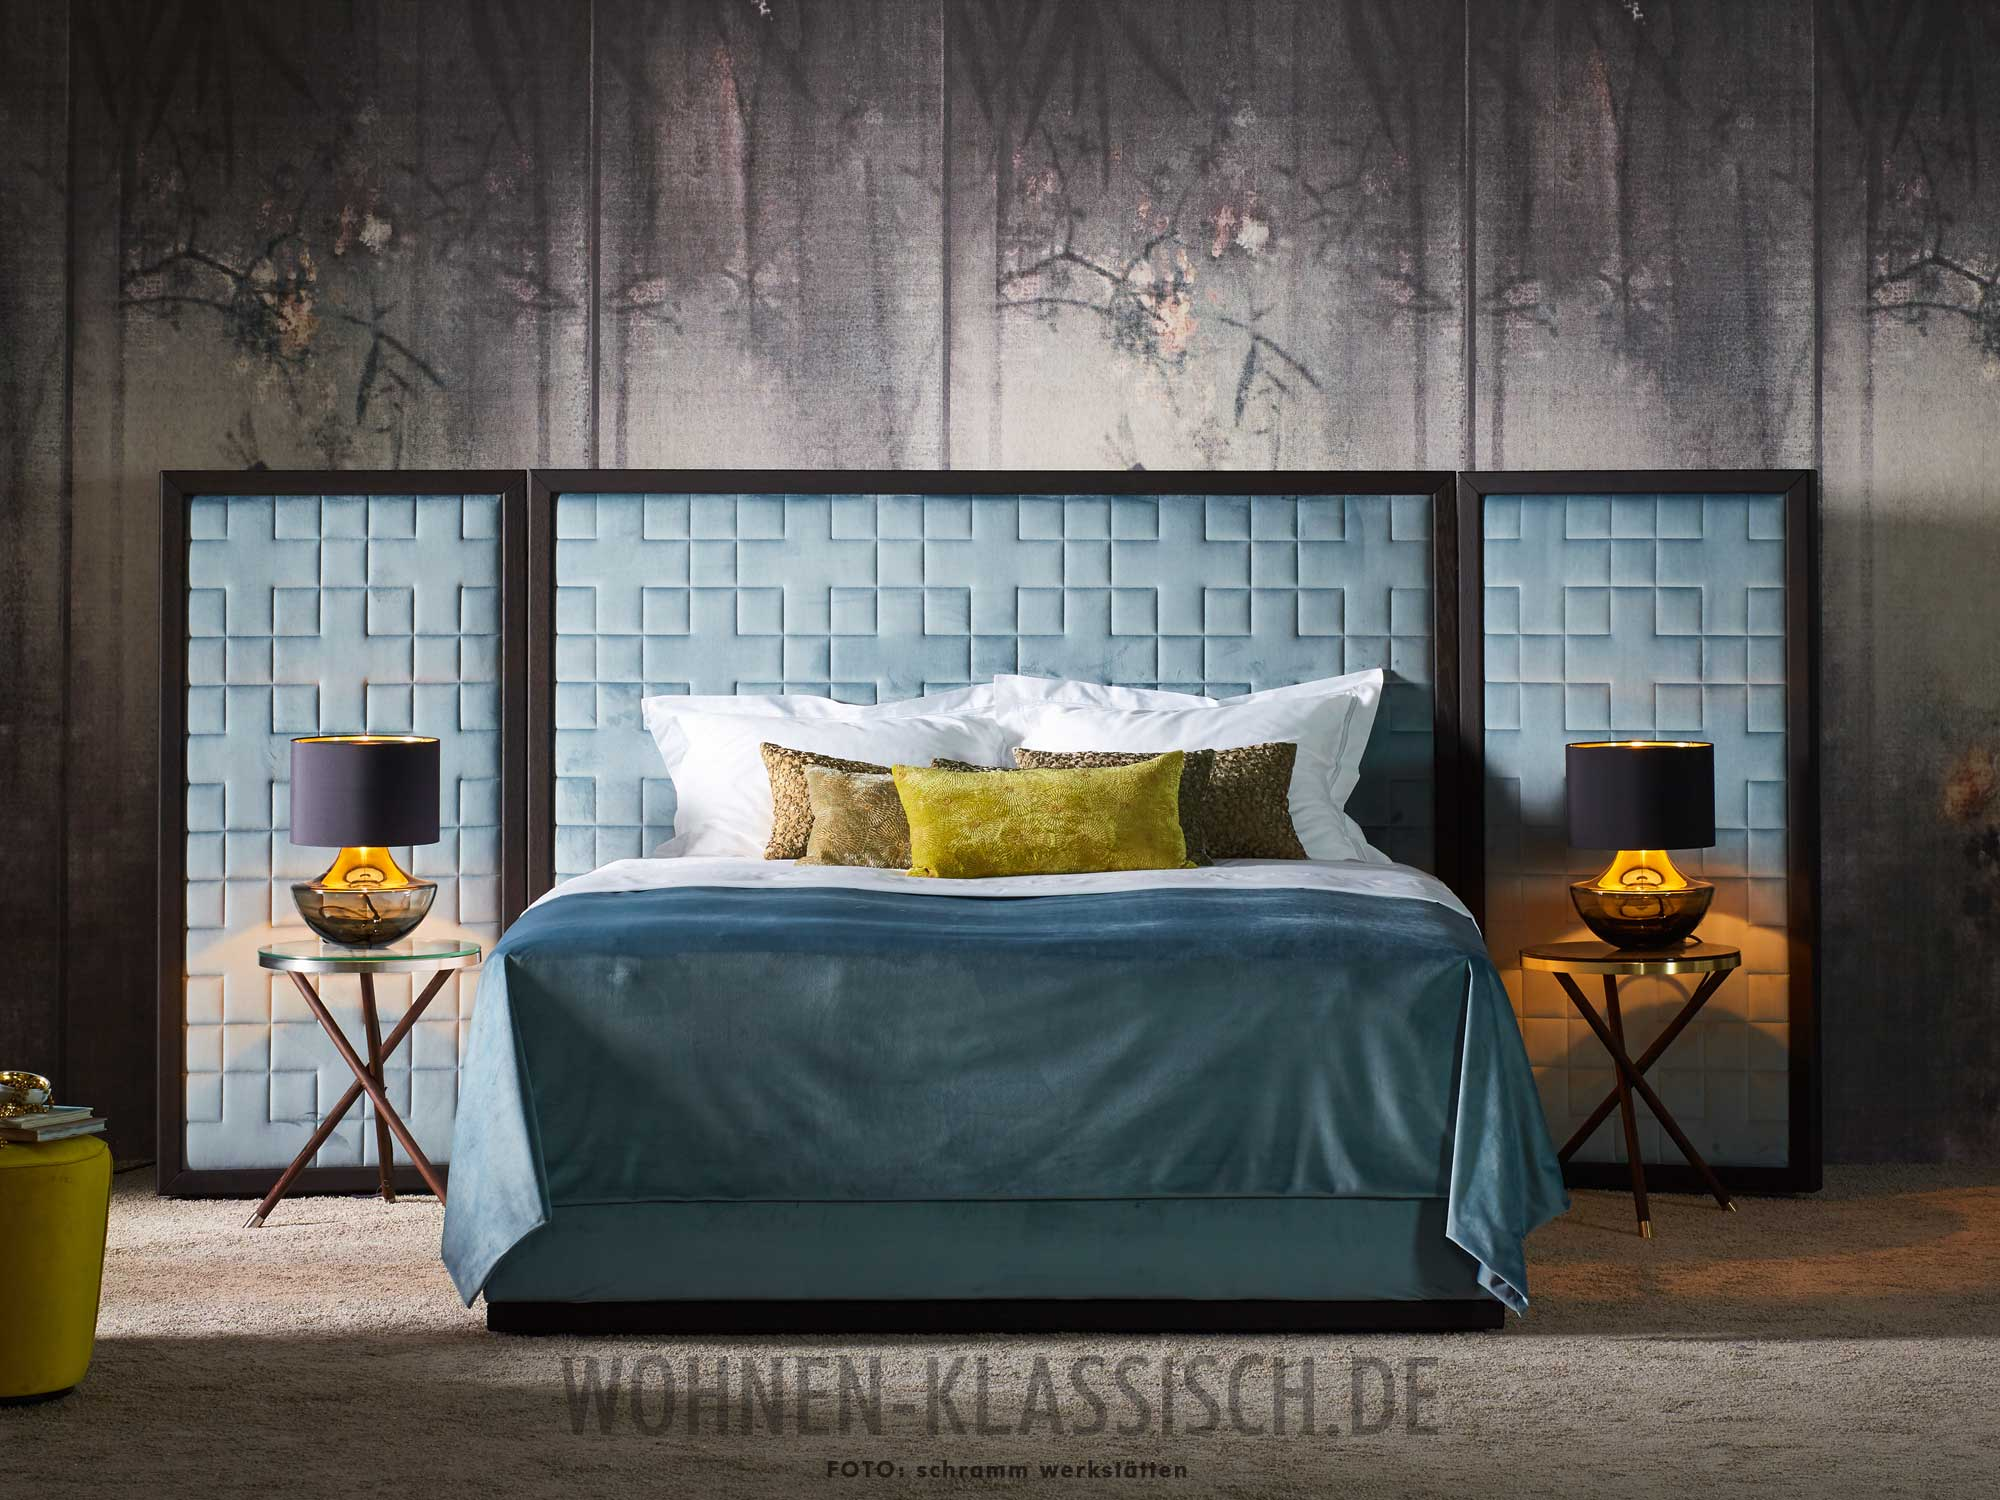 Cocoon Luxusbetten Classic Bedroom Furniture Baroque Art 2013 Vimercati